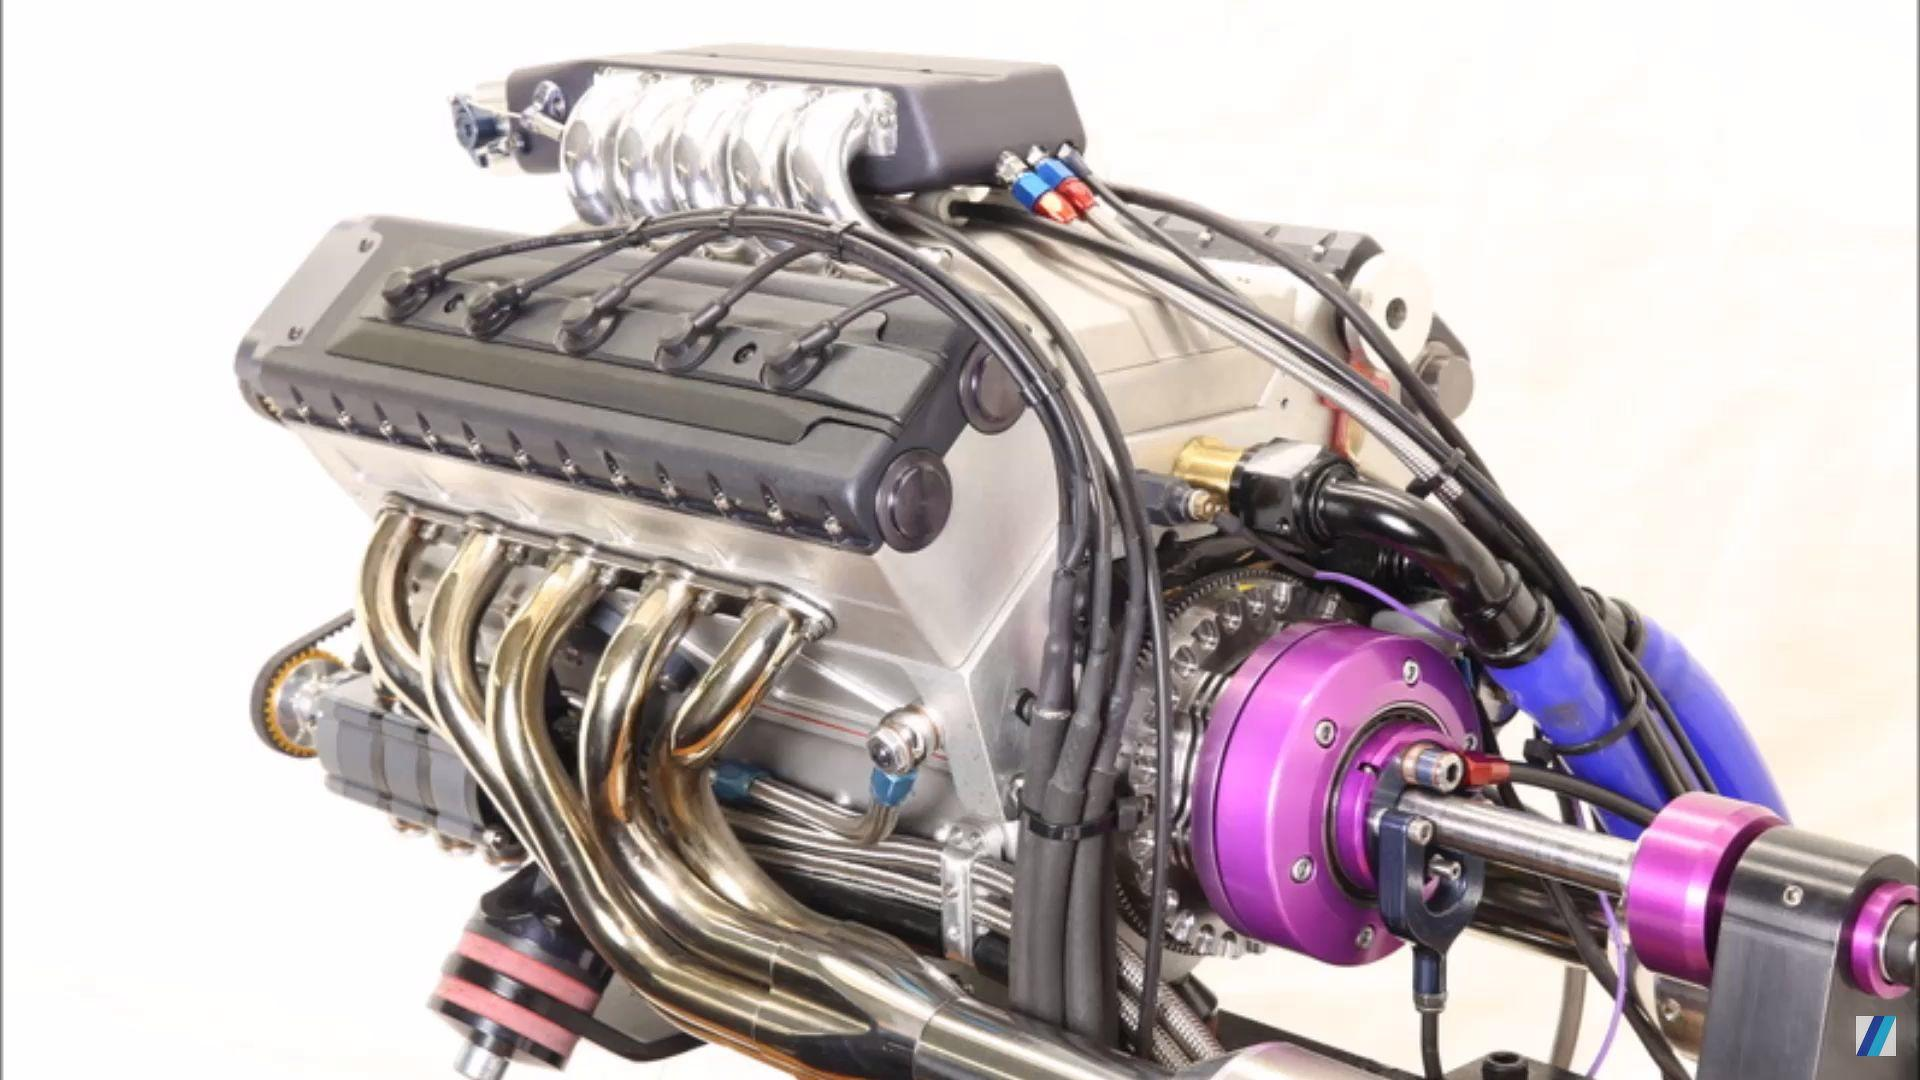 Amazing Miniature V10 Engine Gushes With Craftsmanship